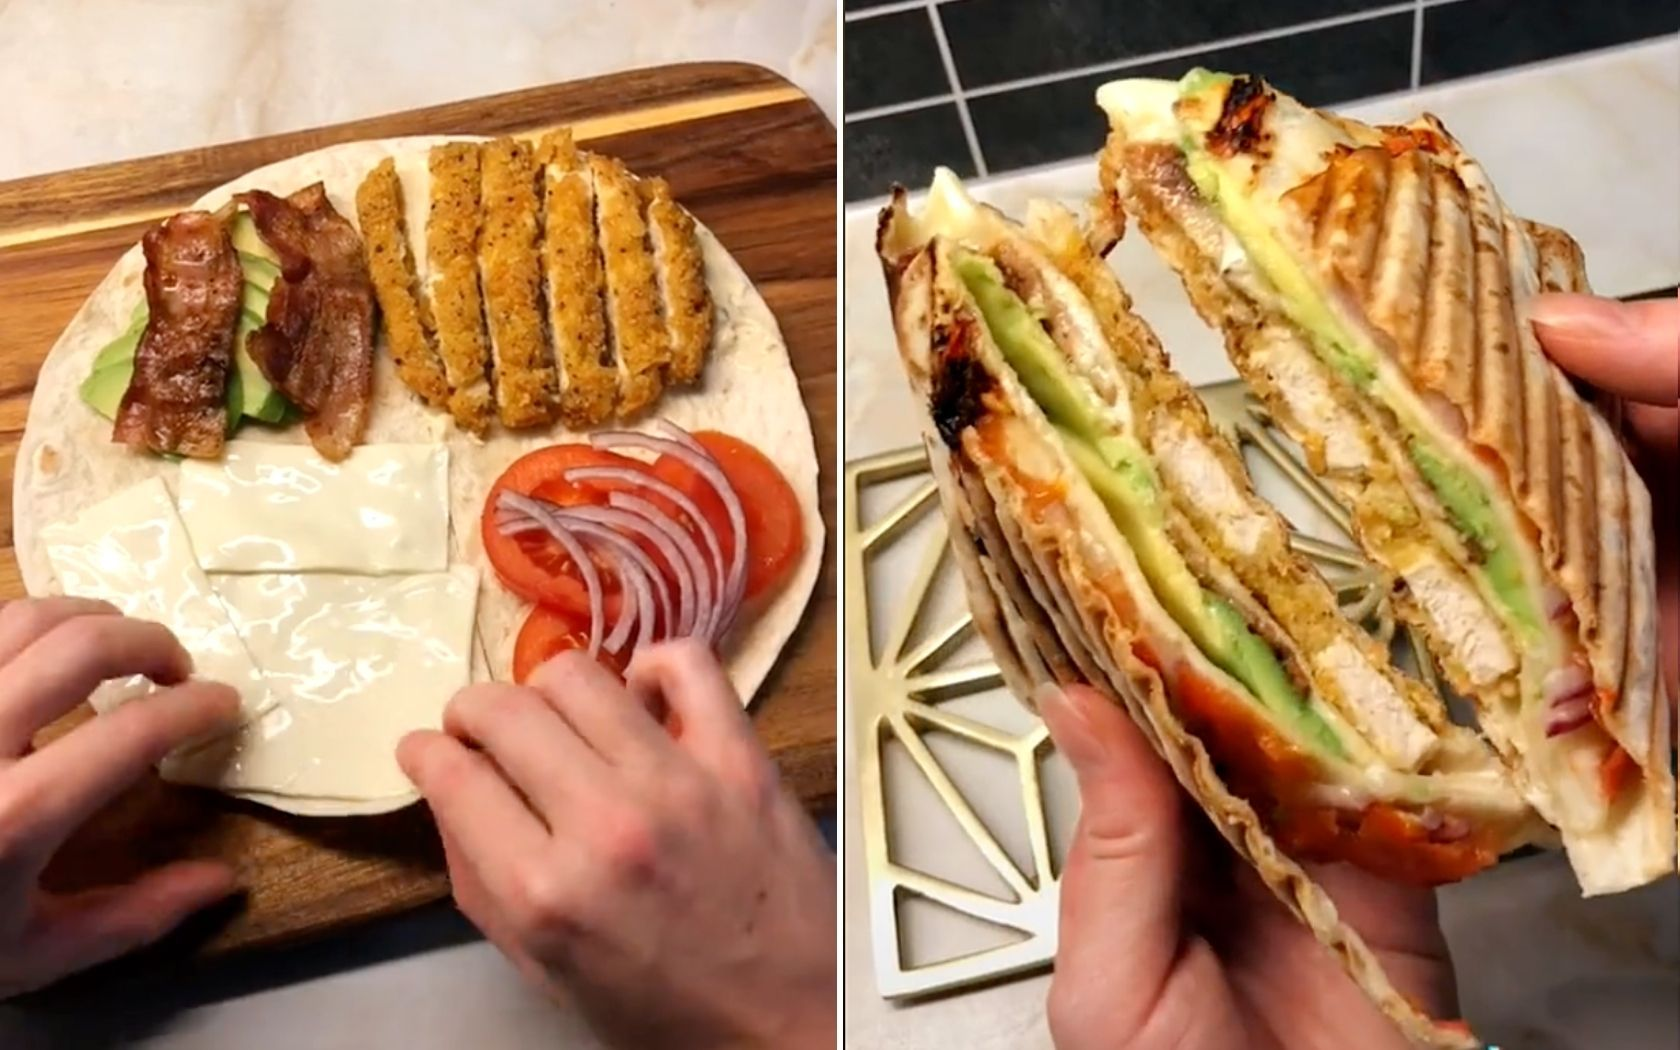 This Tiktok Wrap Hack Will Change The Way You Make Them Forever In 2021 Delicious Healthy Recipes Food Hacks Food